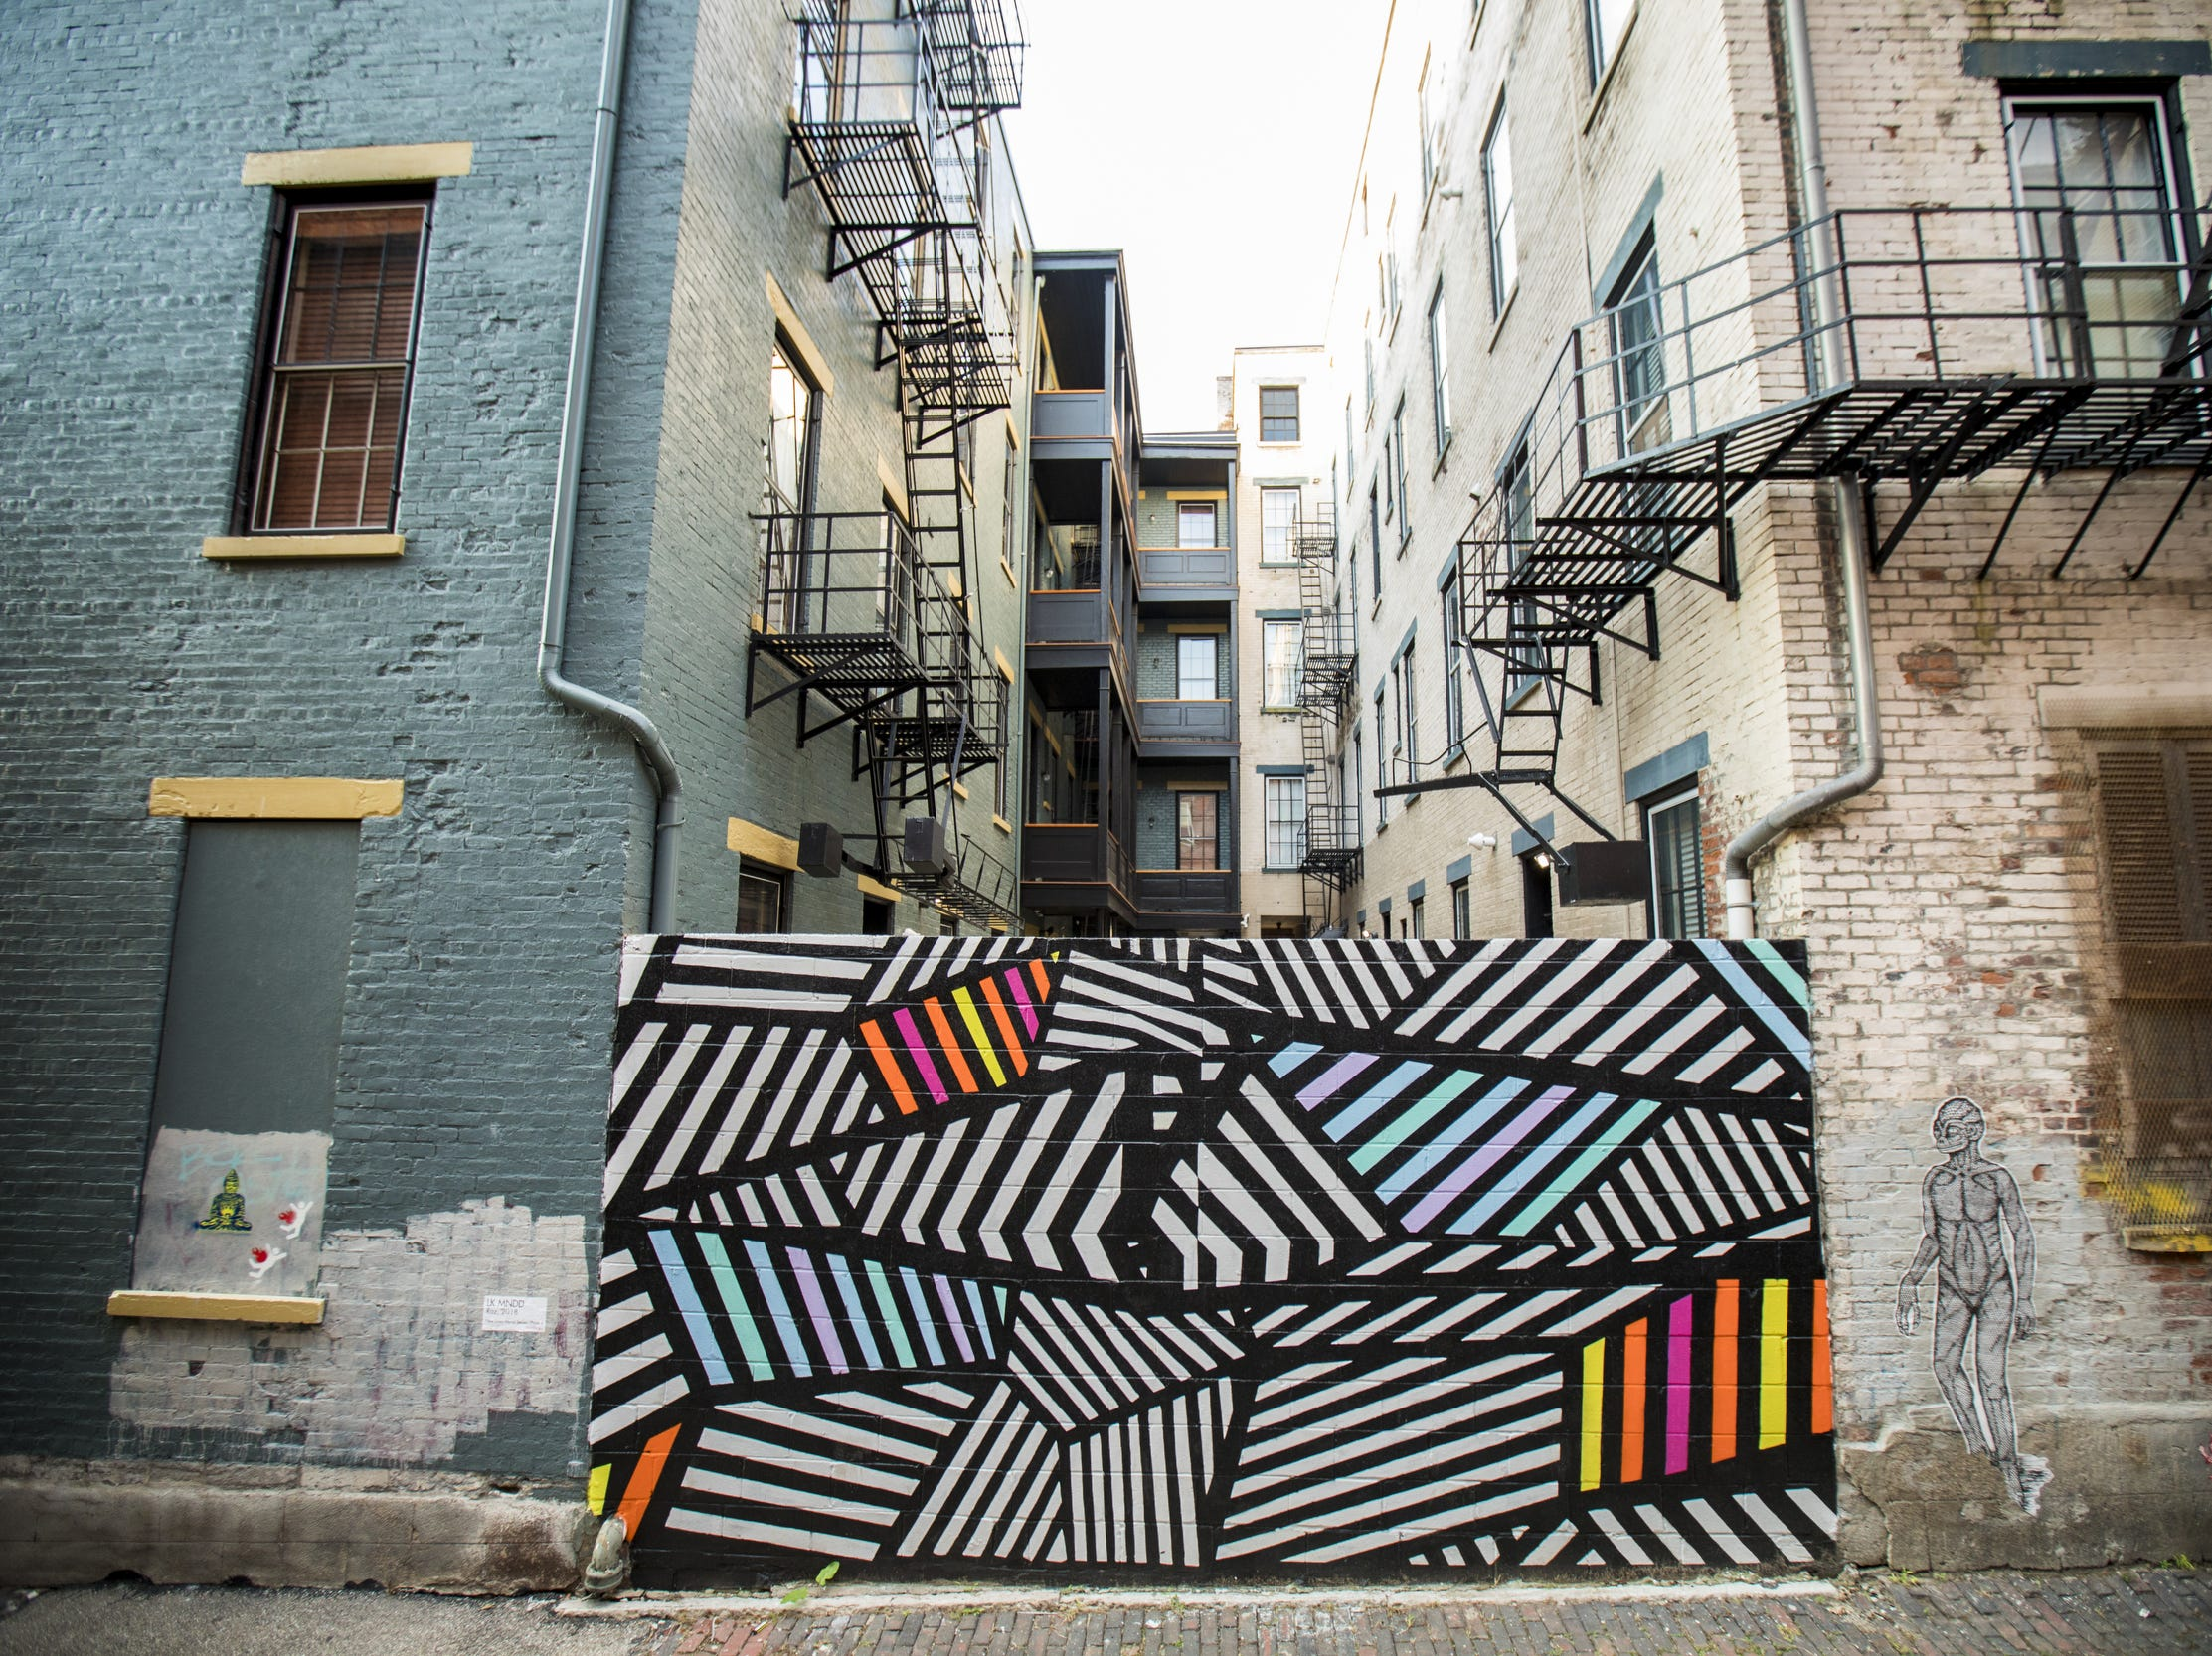 """Raz"" designed by LK MNDD is featured in Bolivar Alley in Pendleton as part of New Lines Alleyway Murals: Phase II by ArtWorks."